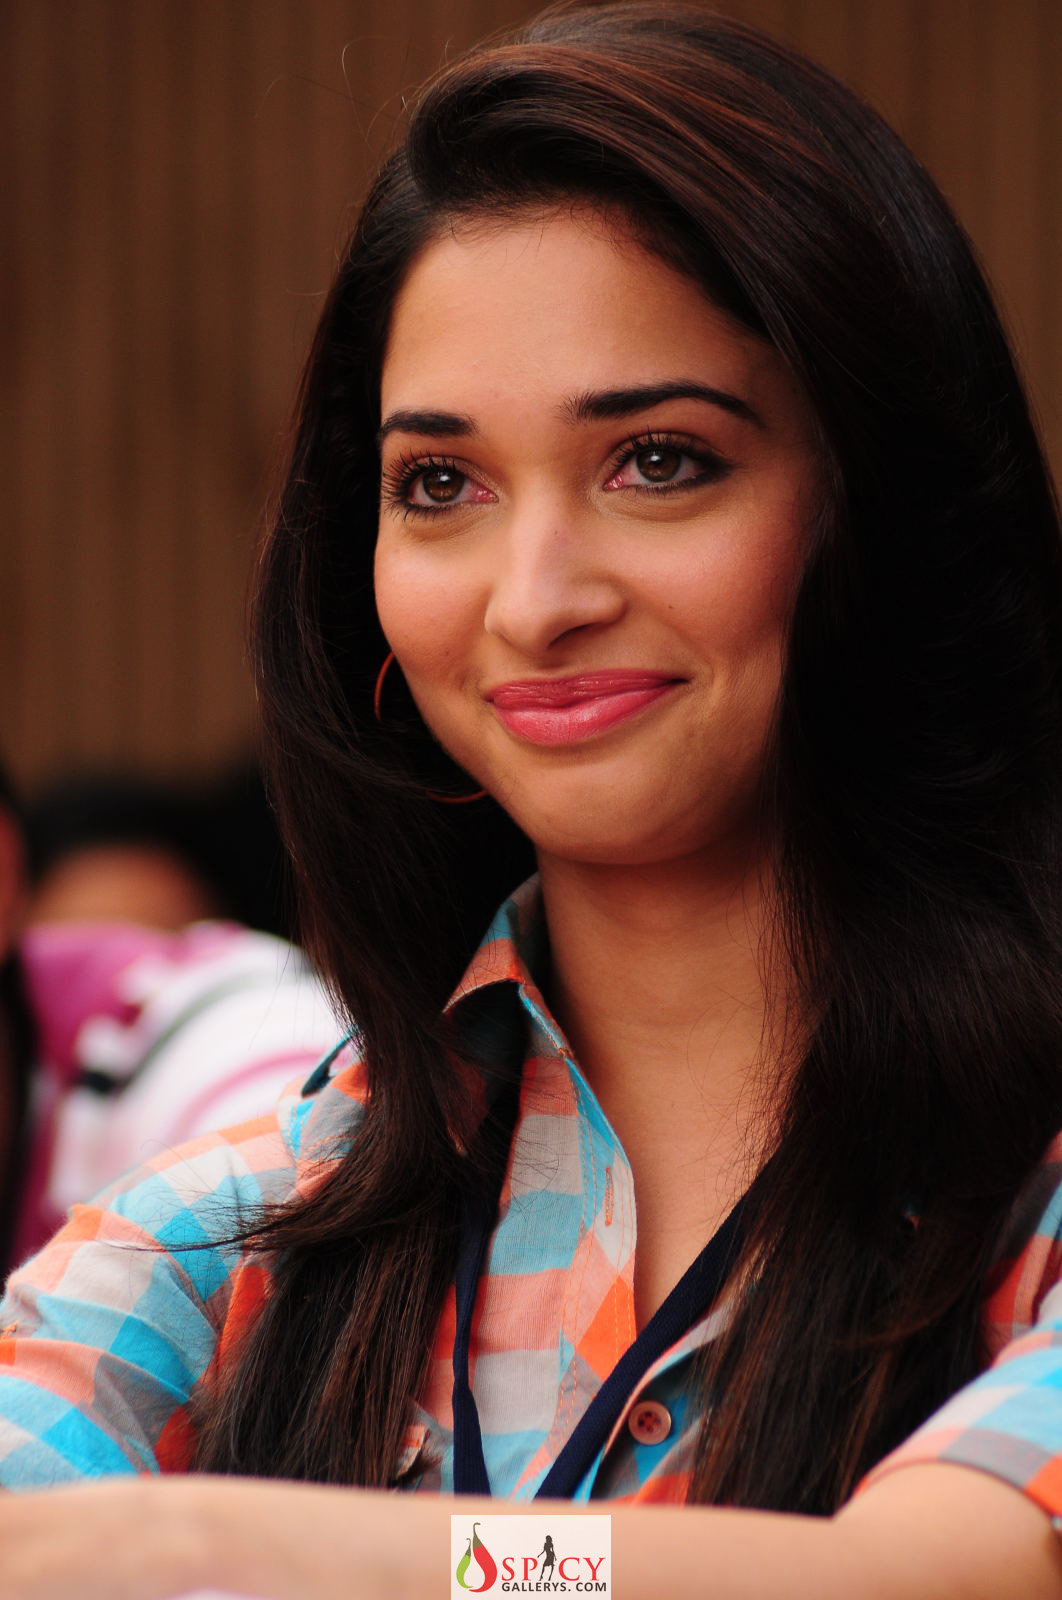 Tamanna Hd Wallpapers Free Download Tamanna New Spicy Photos In 100 Love Percent Movie